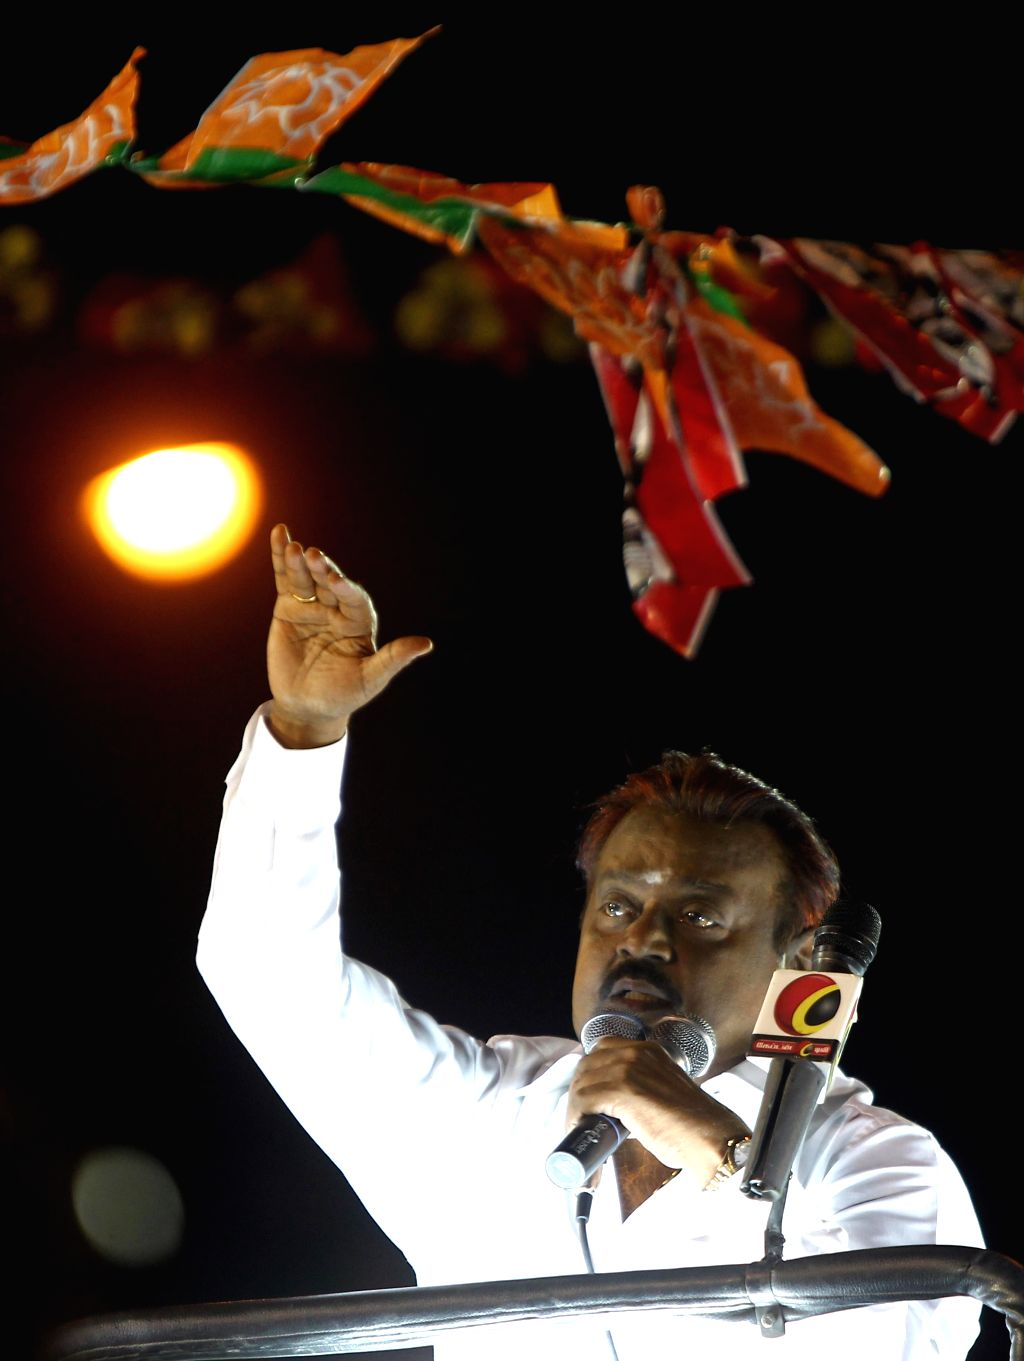 DMDK president Vijayakanth during an election campaign in Chennai on April 20, 2014.